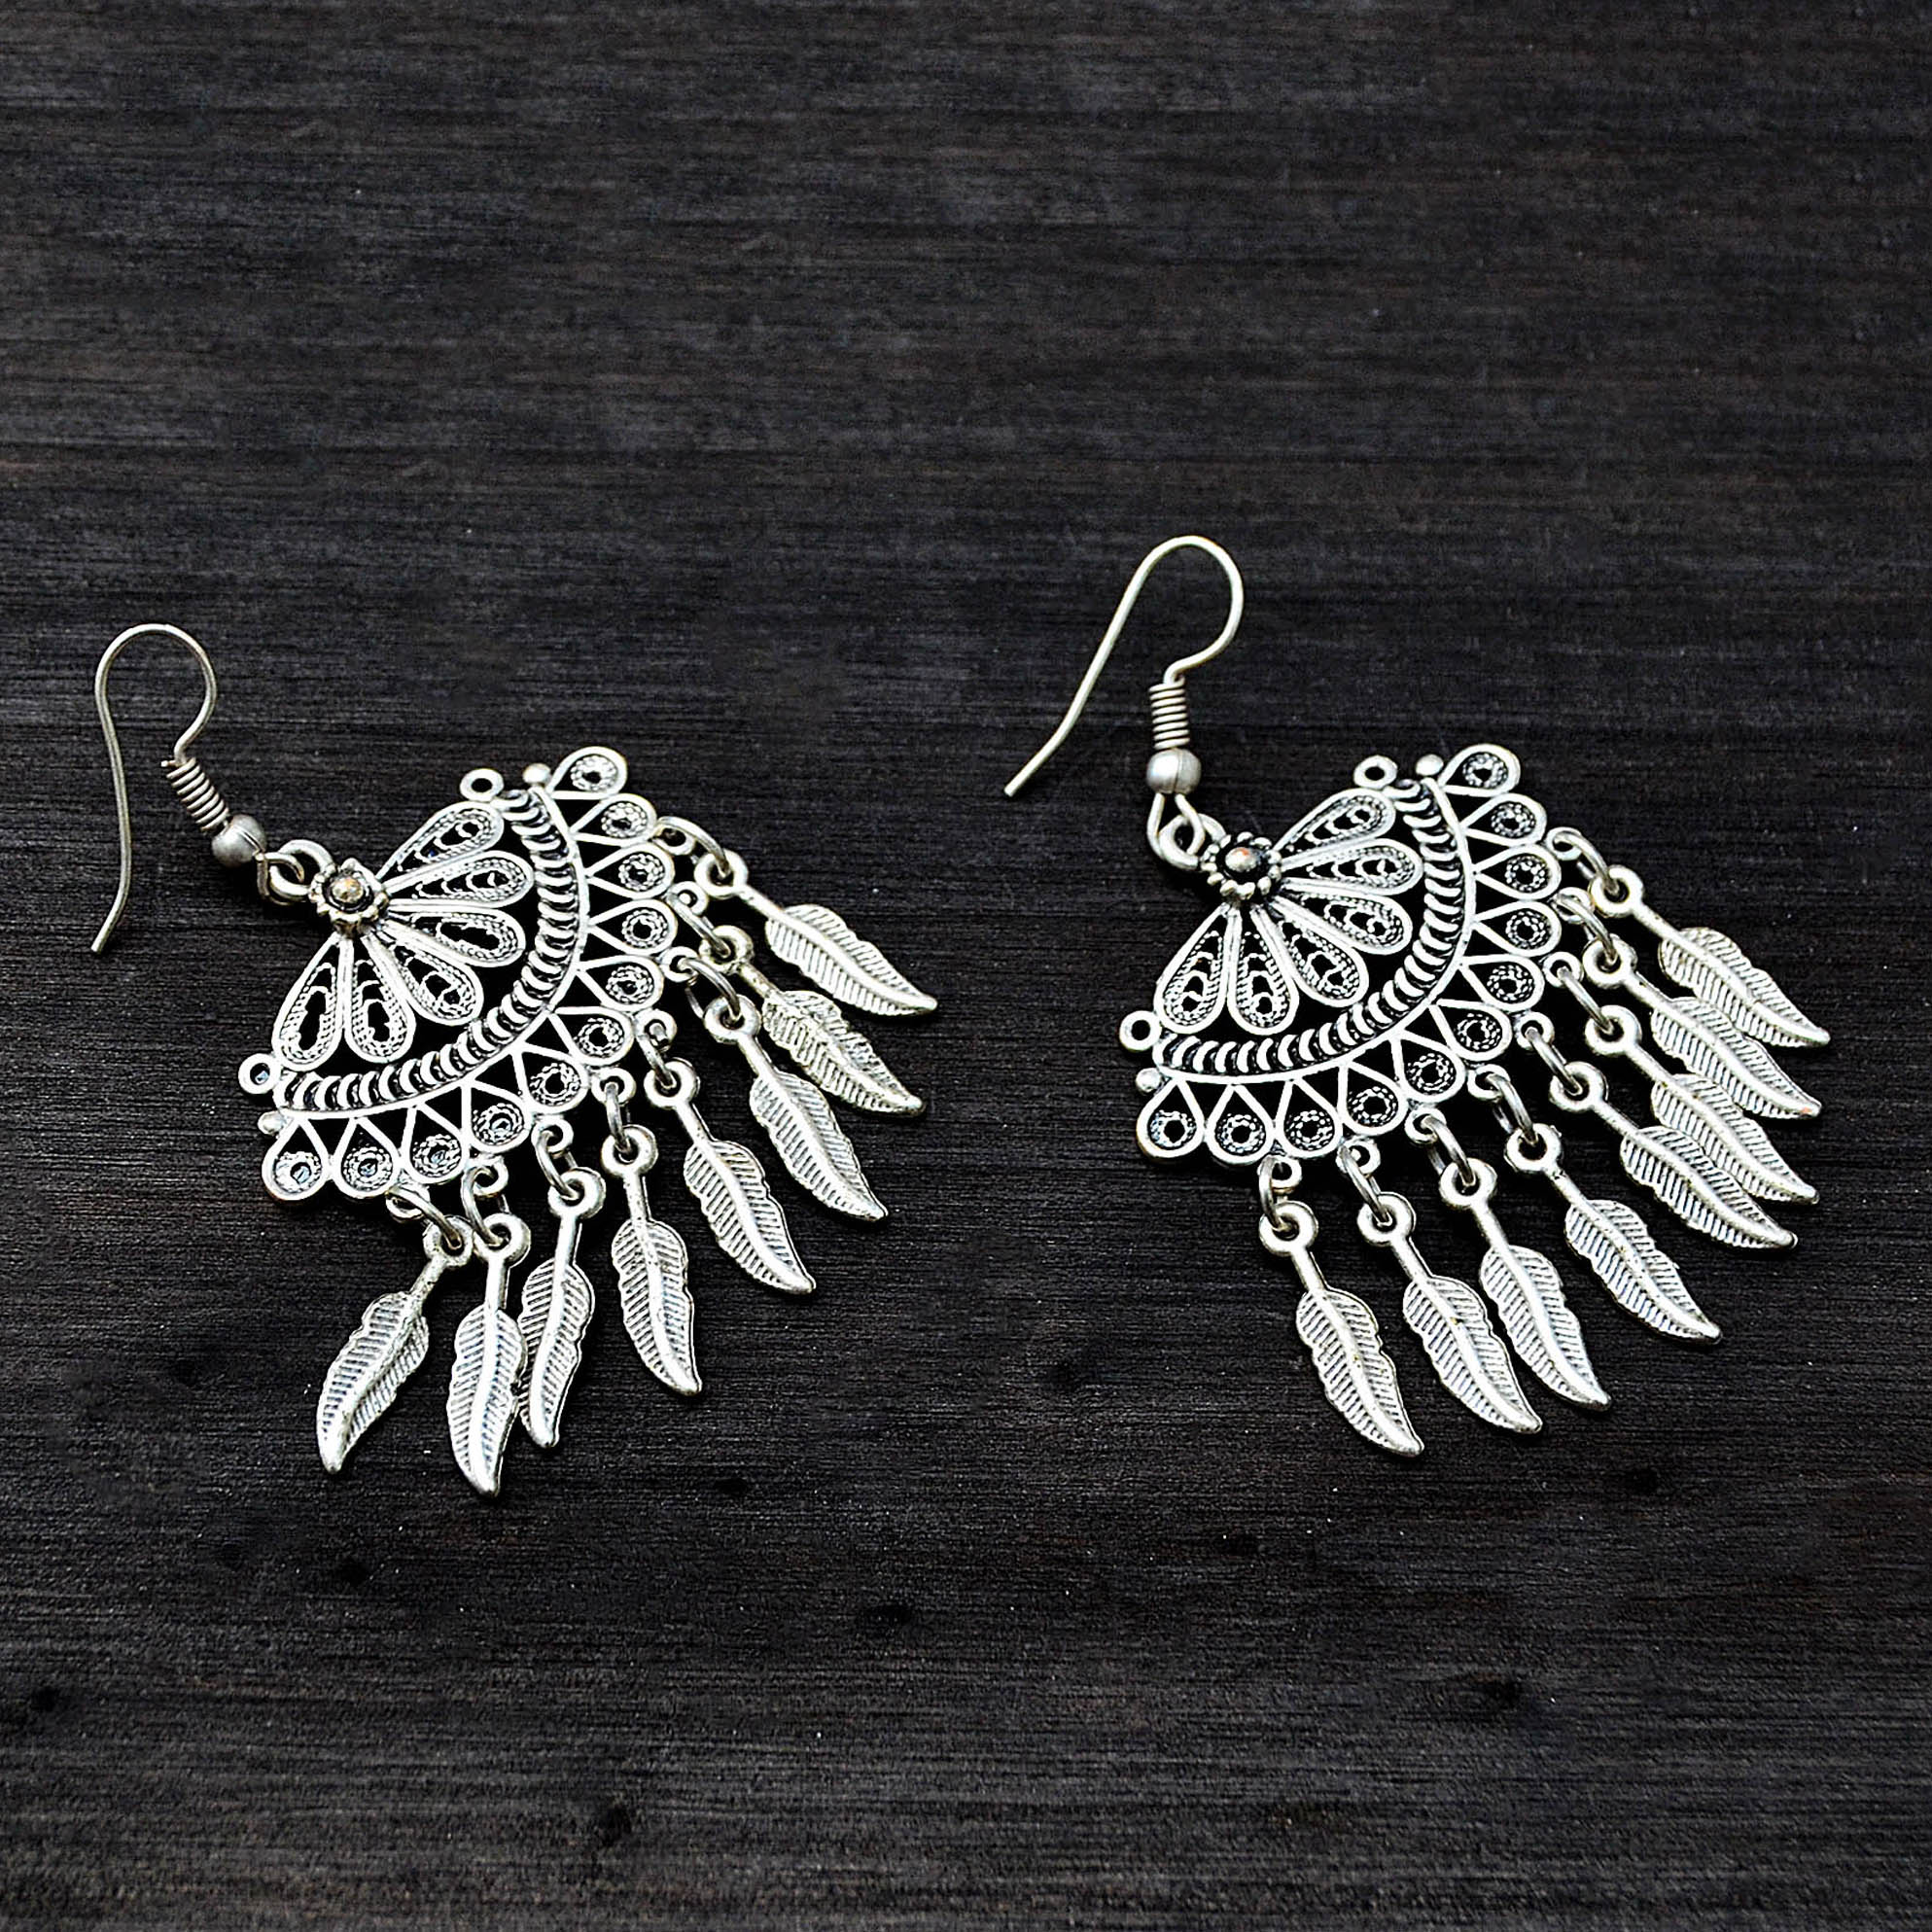 Traditional tribal earrings